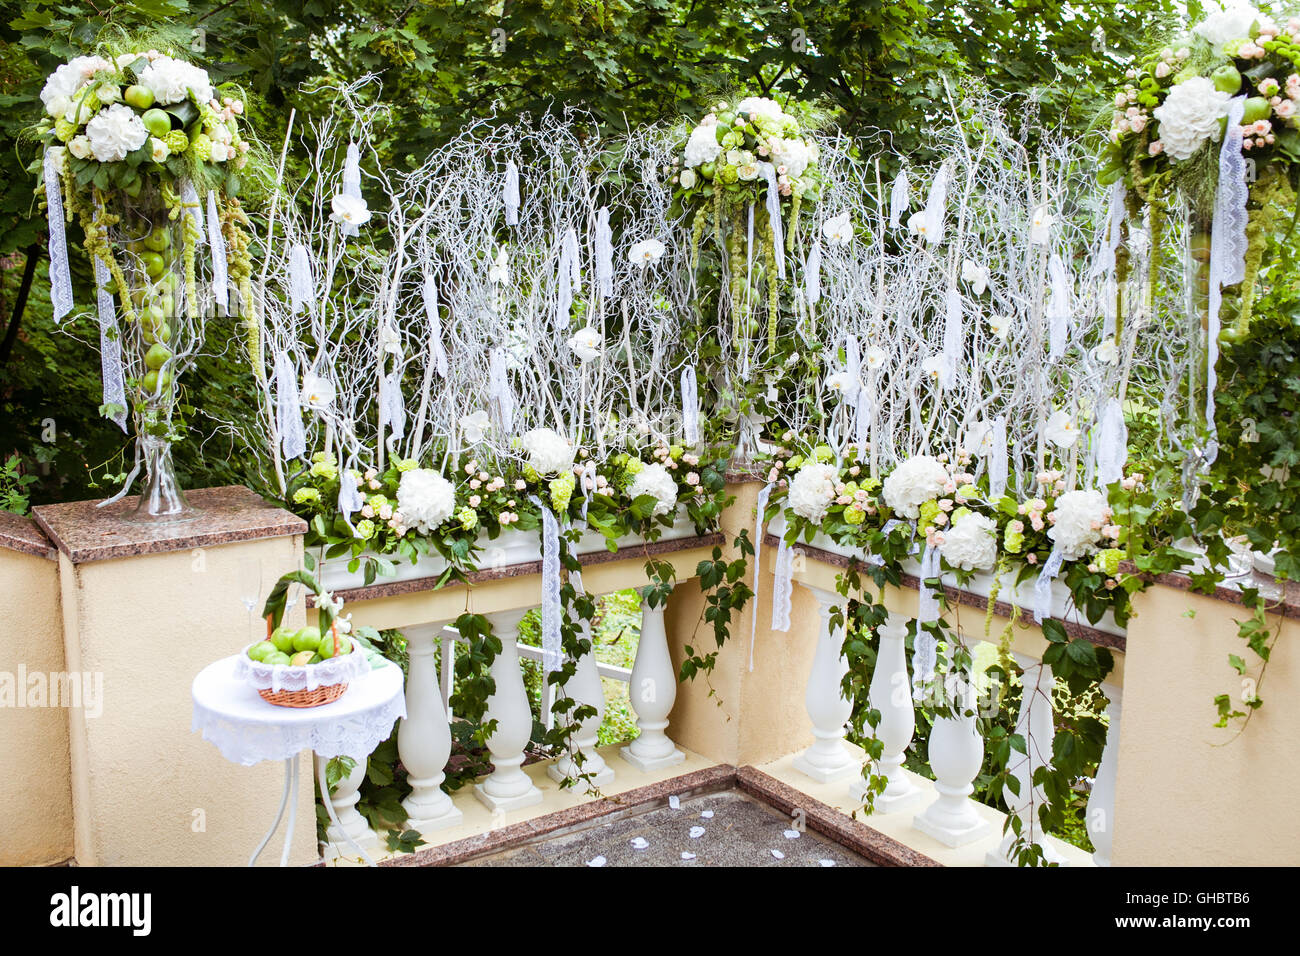 Wedding decor a bowl of green apples fresh flowers and lace stock wedding decor a bowl of green apples fresh flowers and lace ribbons junglespirit Image collections